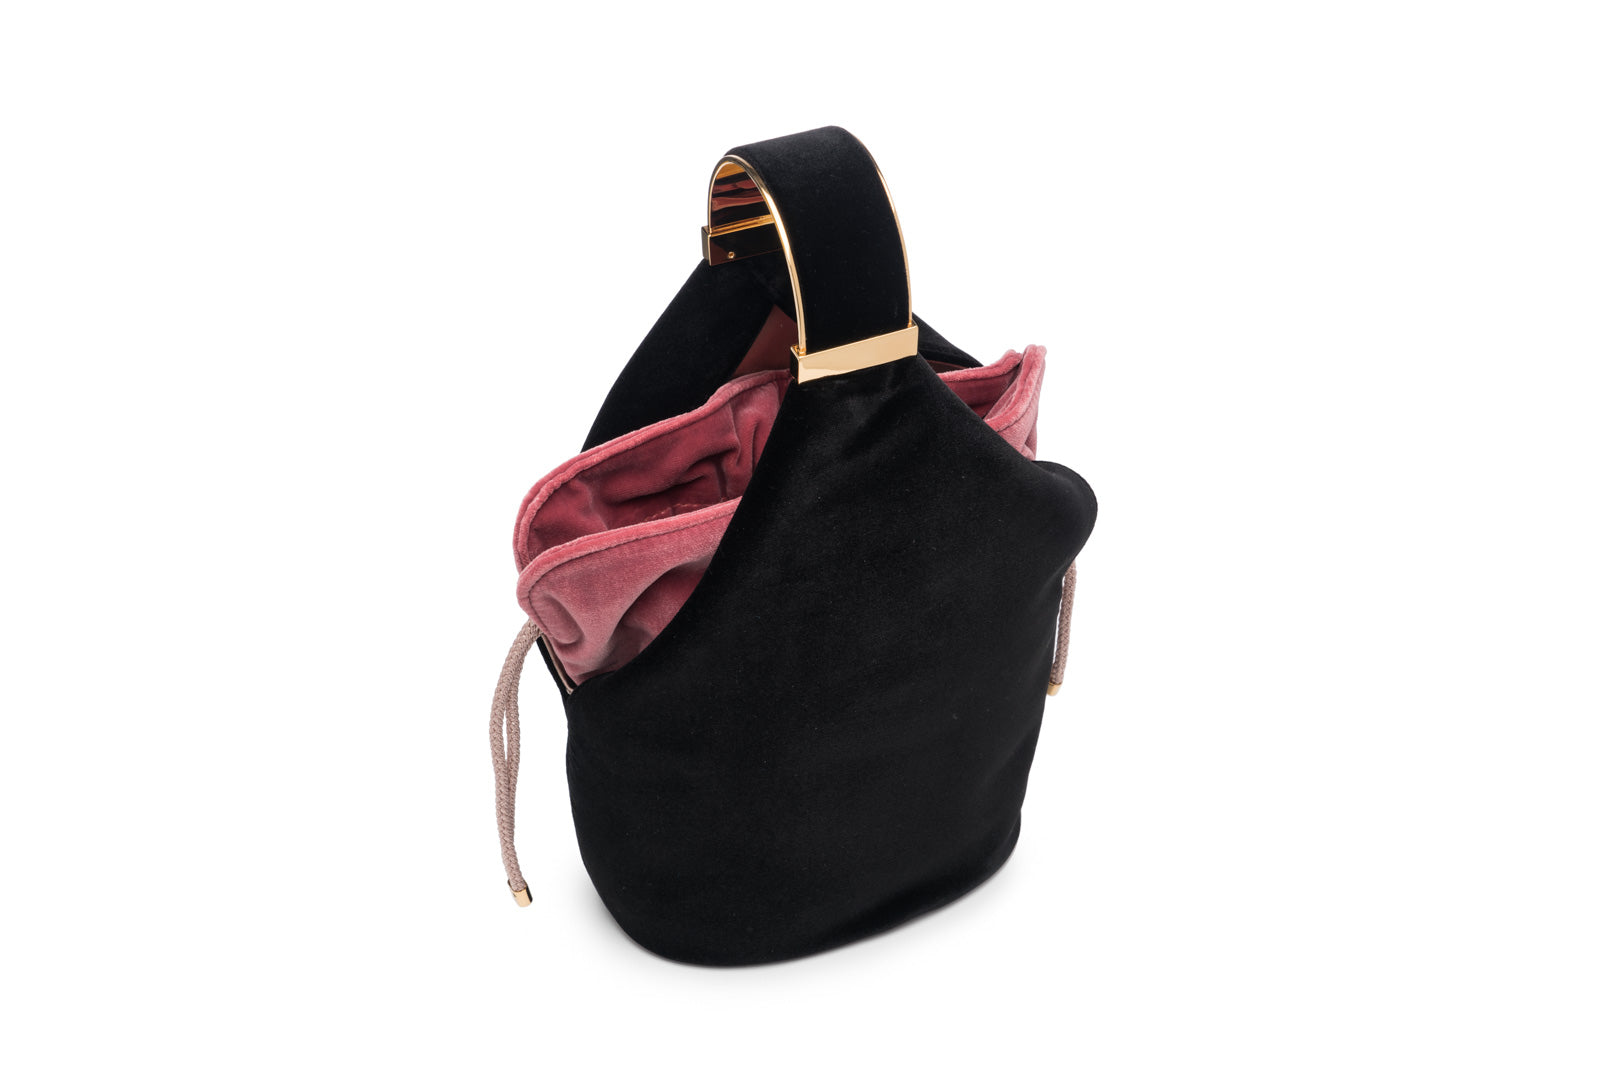 Kit Bracelet Bag in Black Velvet with 24K Gold Finished Hardware